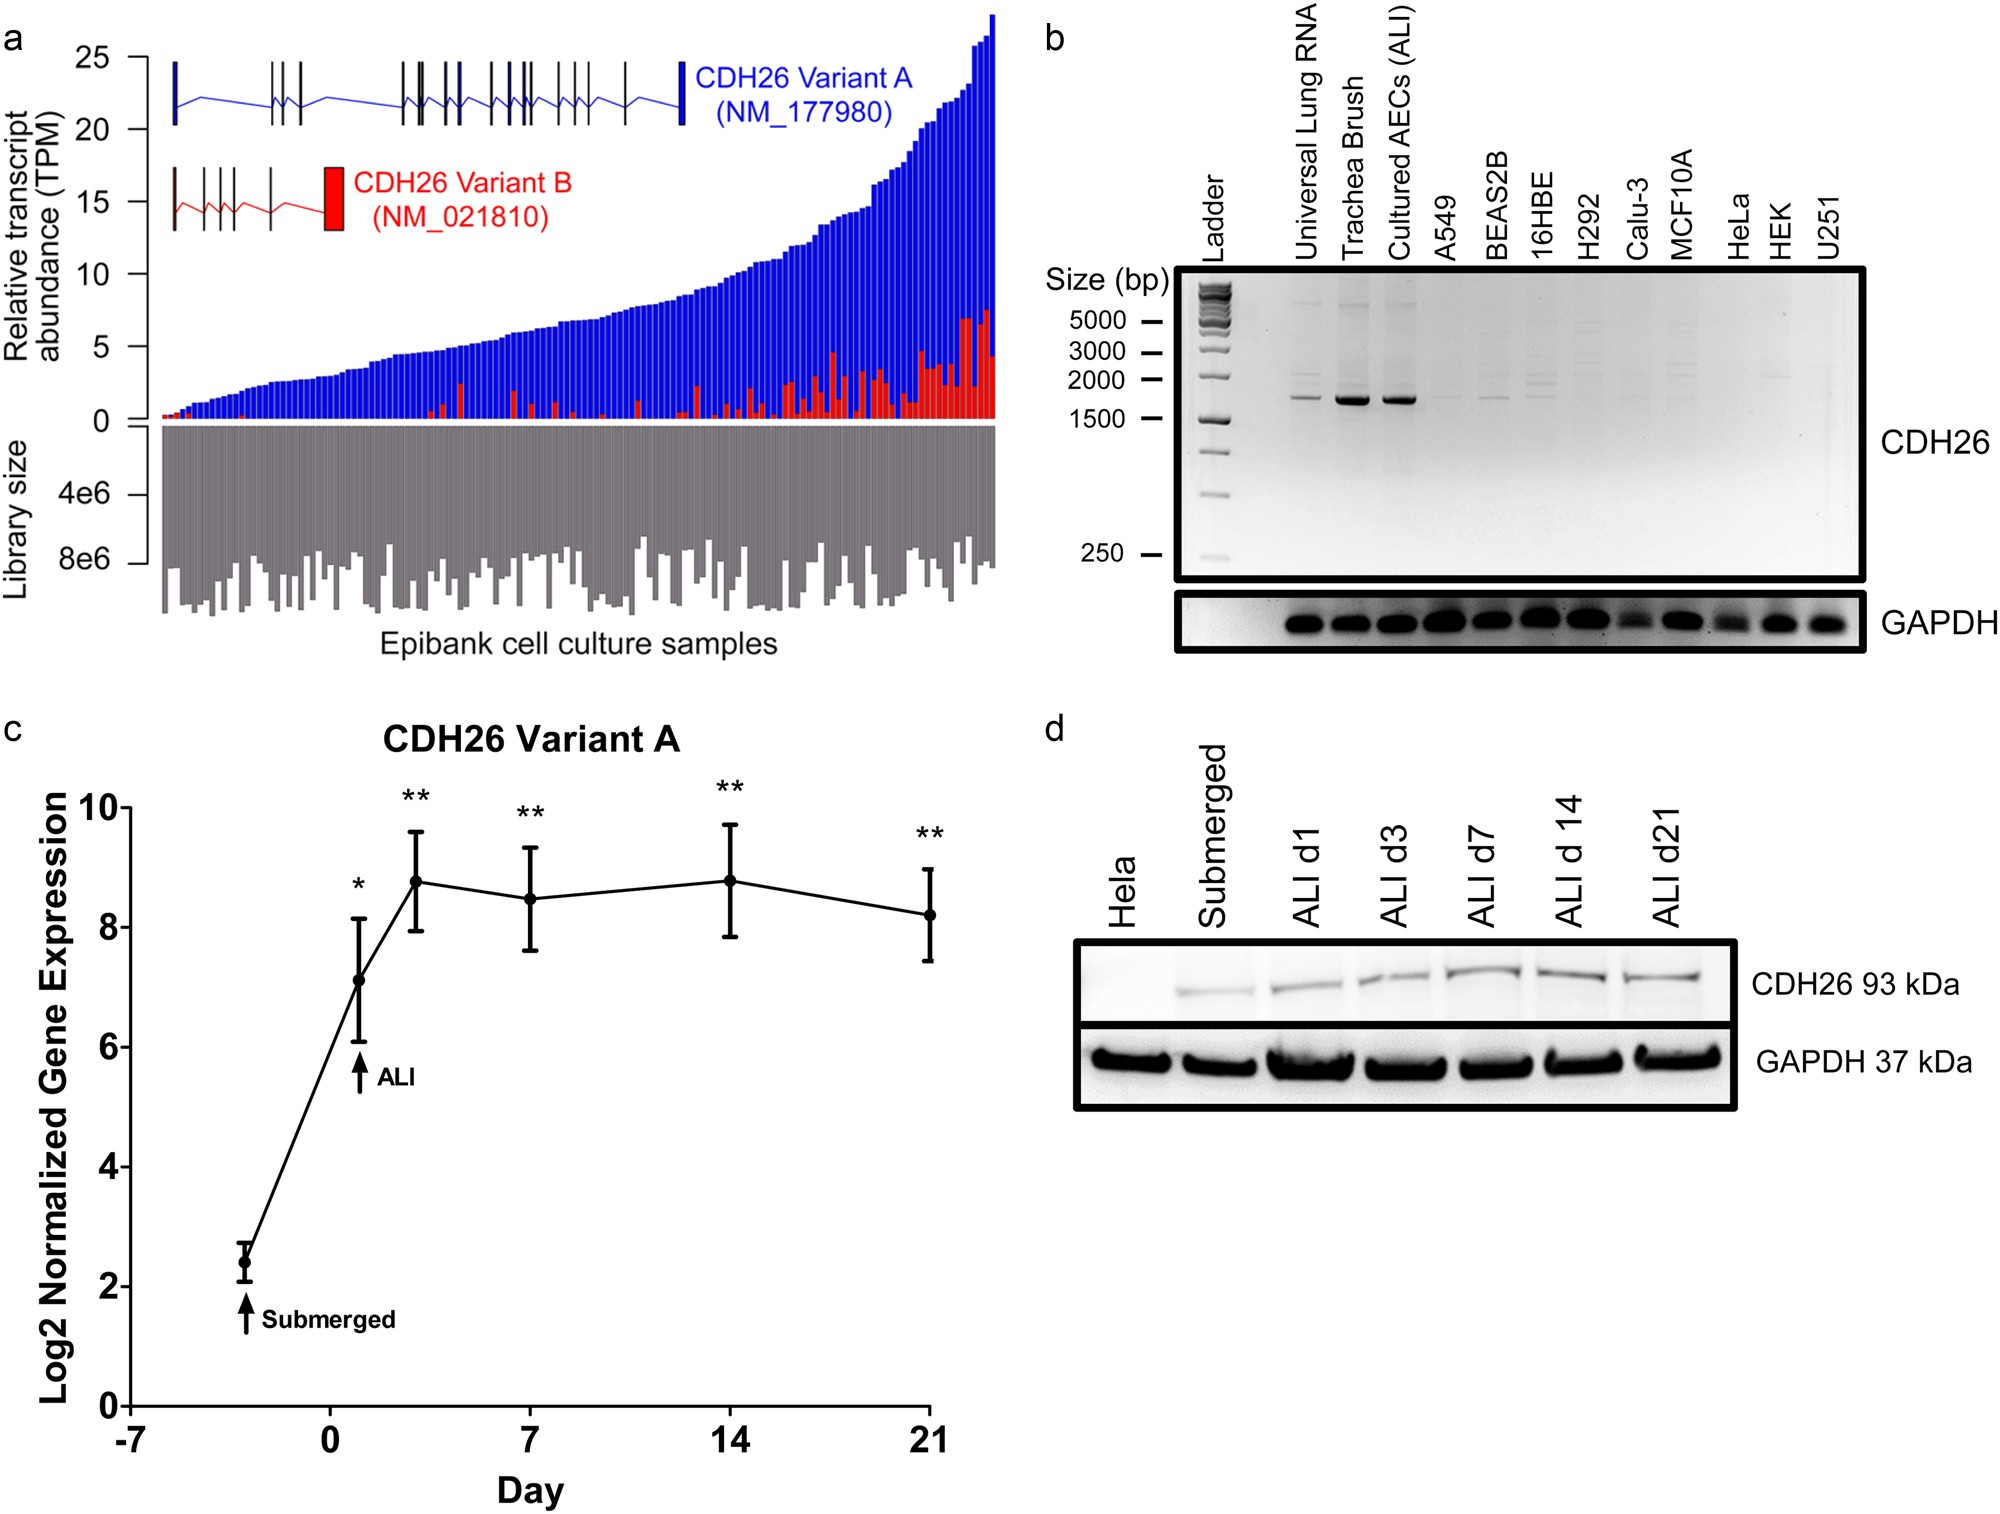 Cadherin 26 Cdh26 Regulates Airway Epithelial Cell Cytoskeletal When The Switch Is Open Voltmeter Reads 60 V And It Structure Polarity Discovery